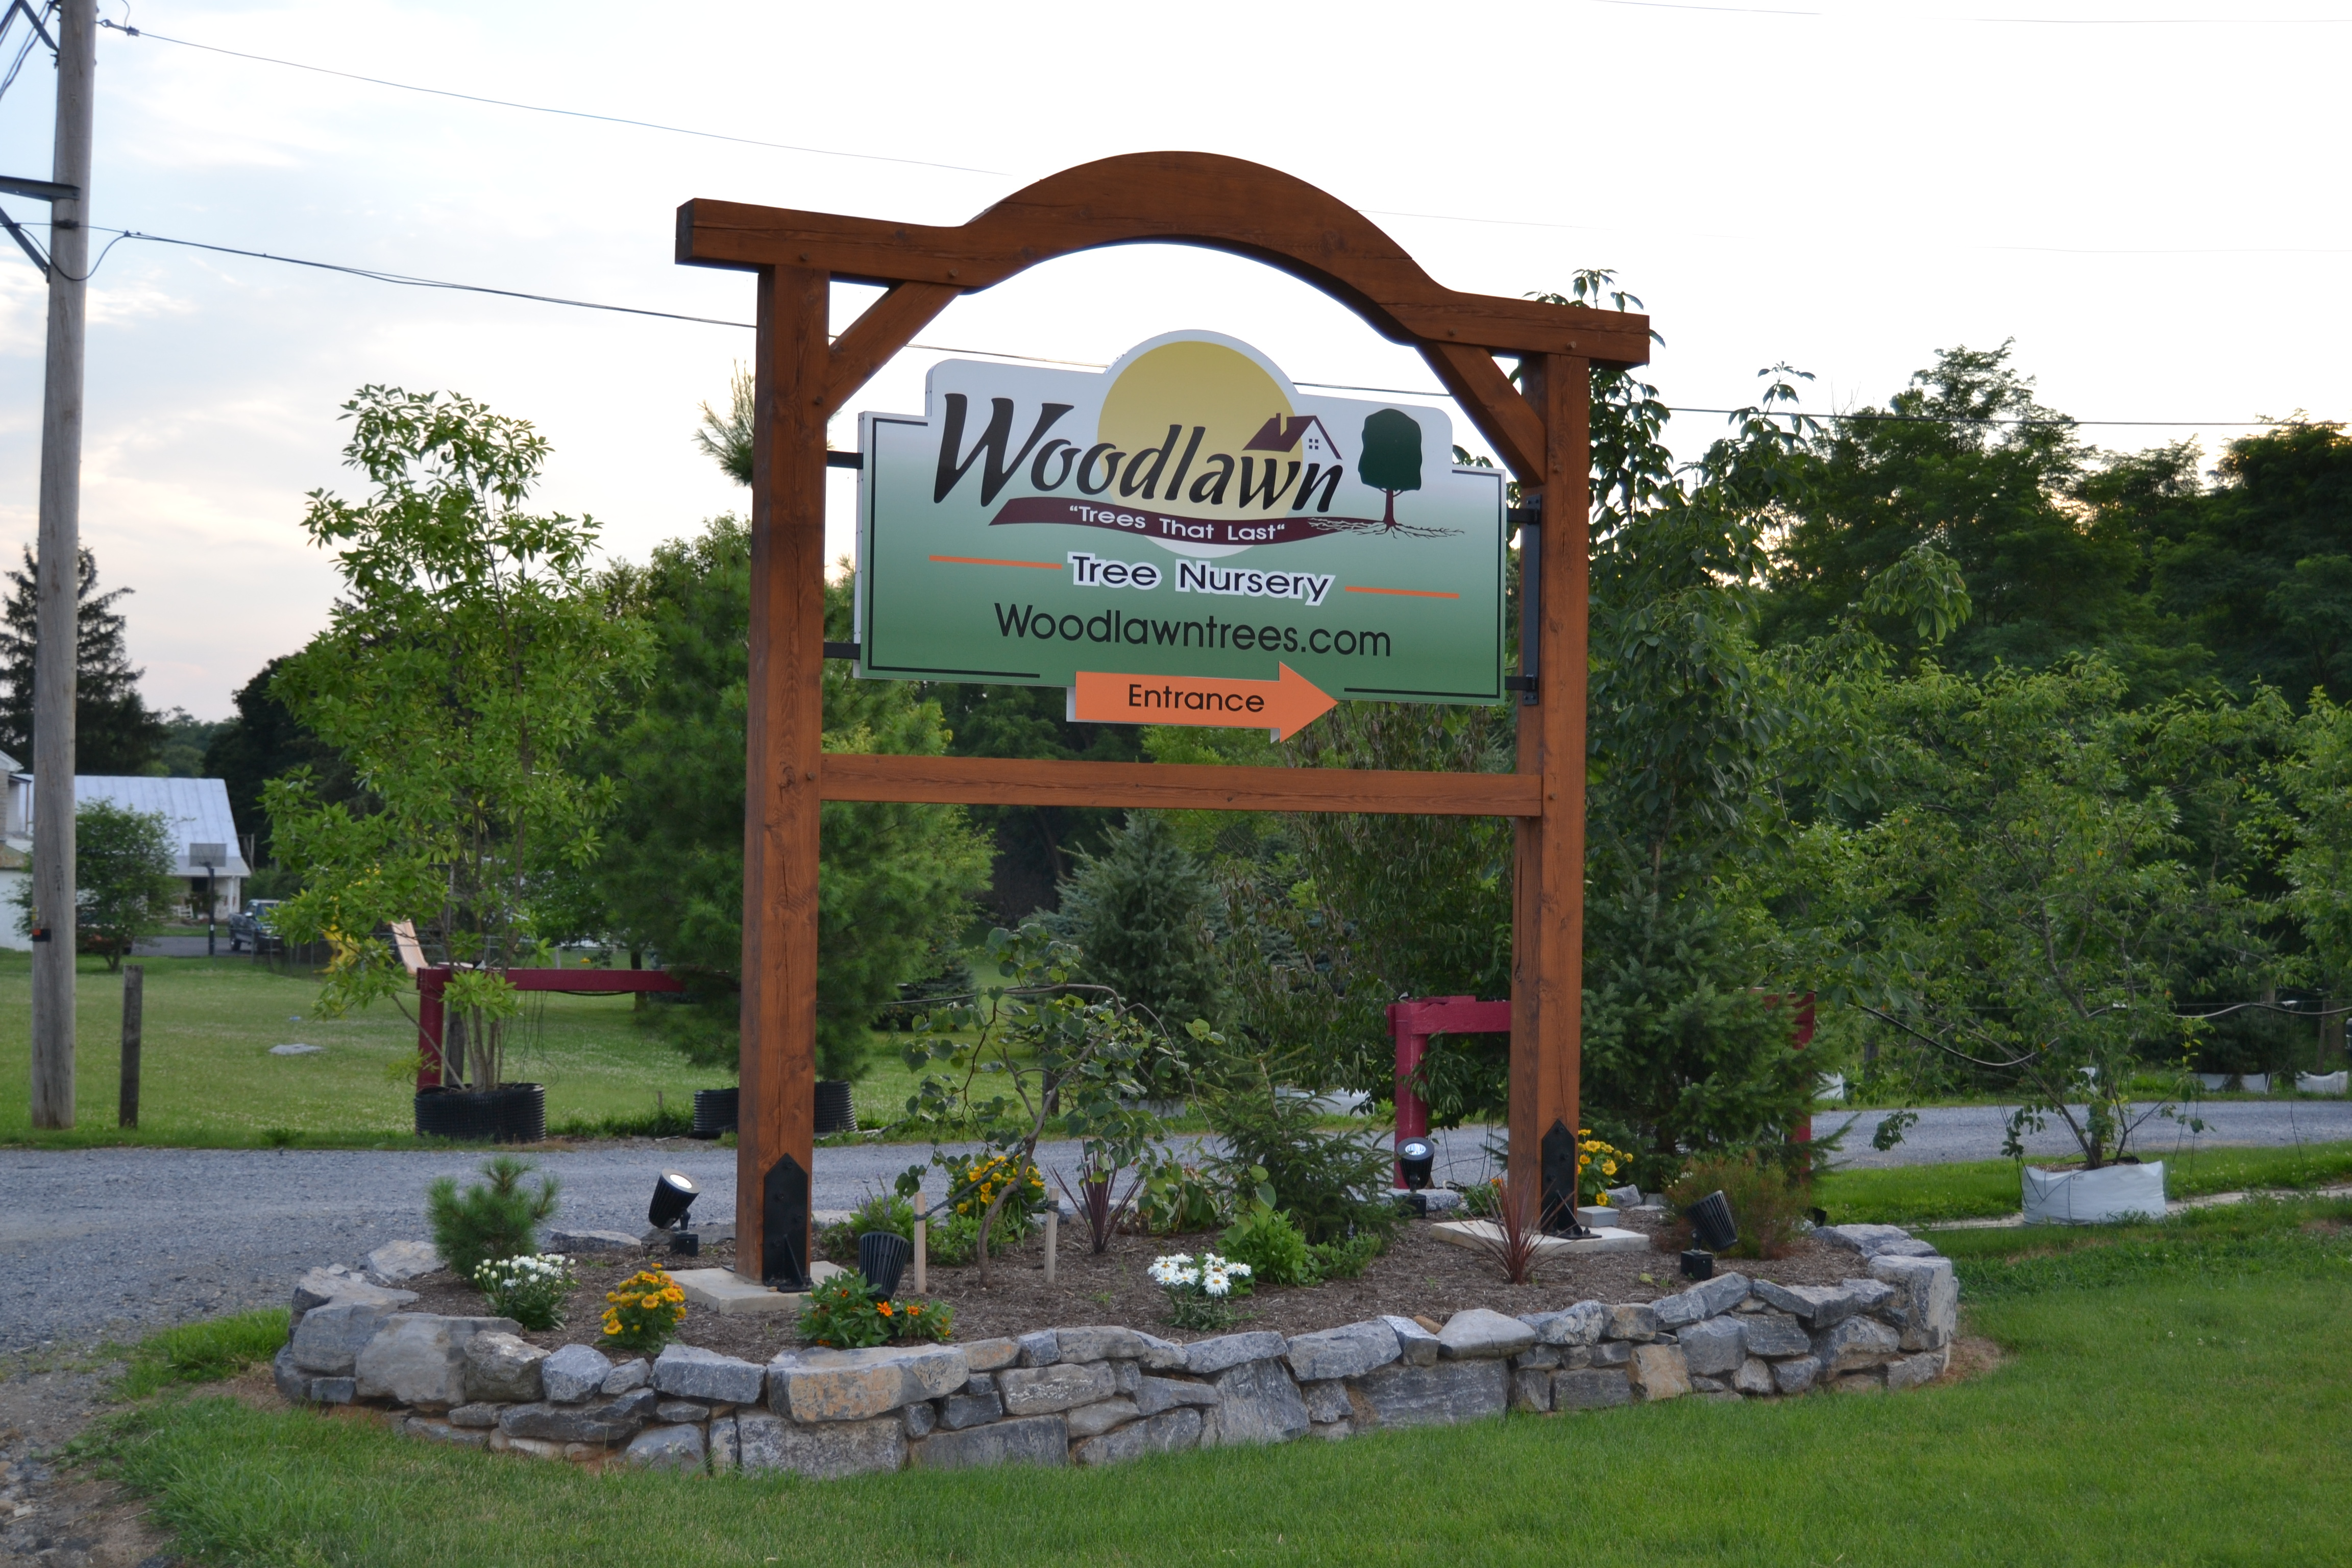 Woodlawn Tree Nursery sign